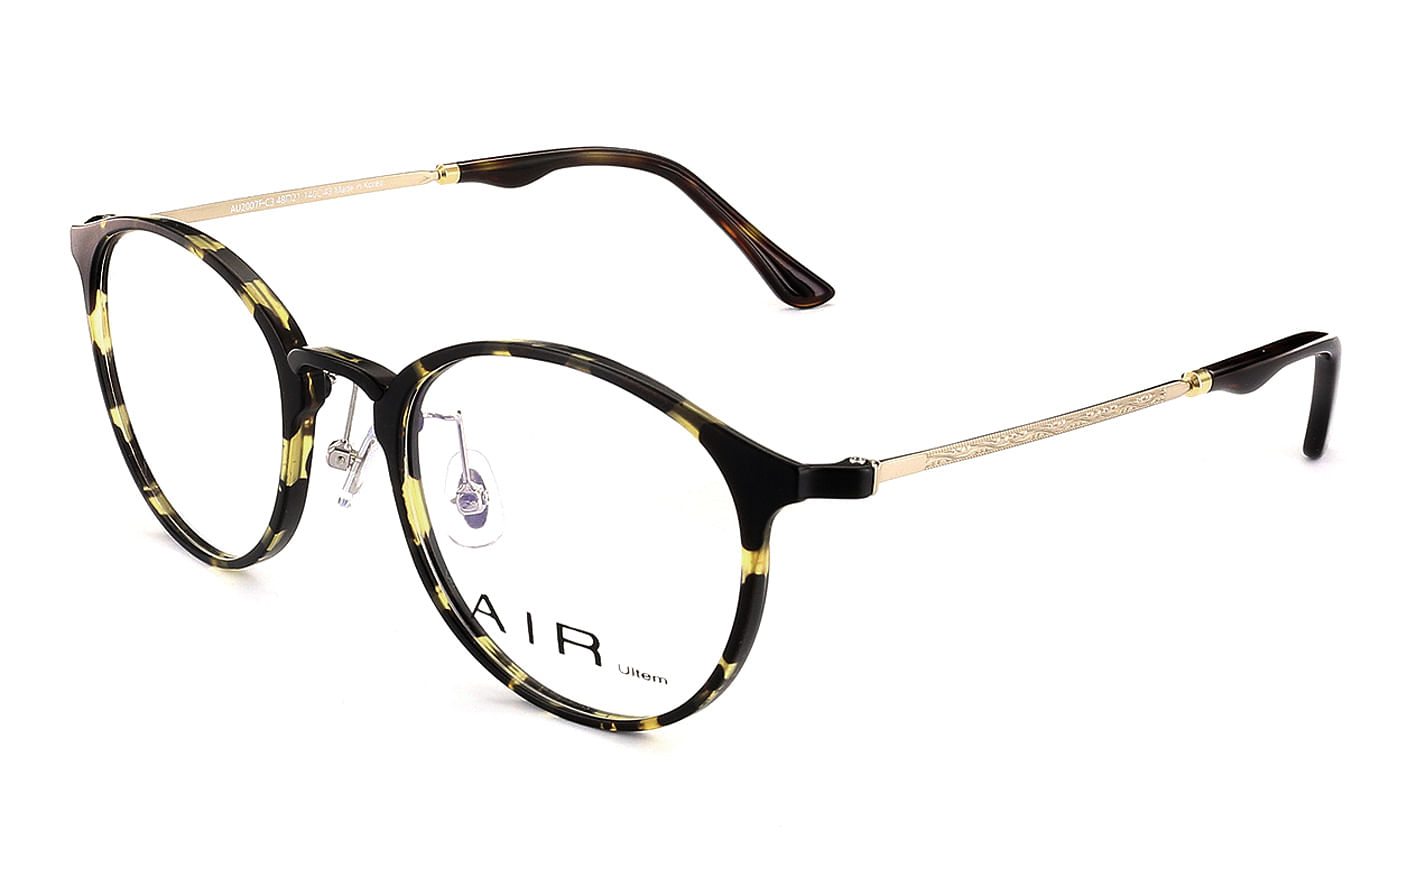 381db6b7e89 Wearing spectacles to make a fashion statement is all the rage ...